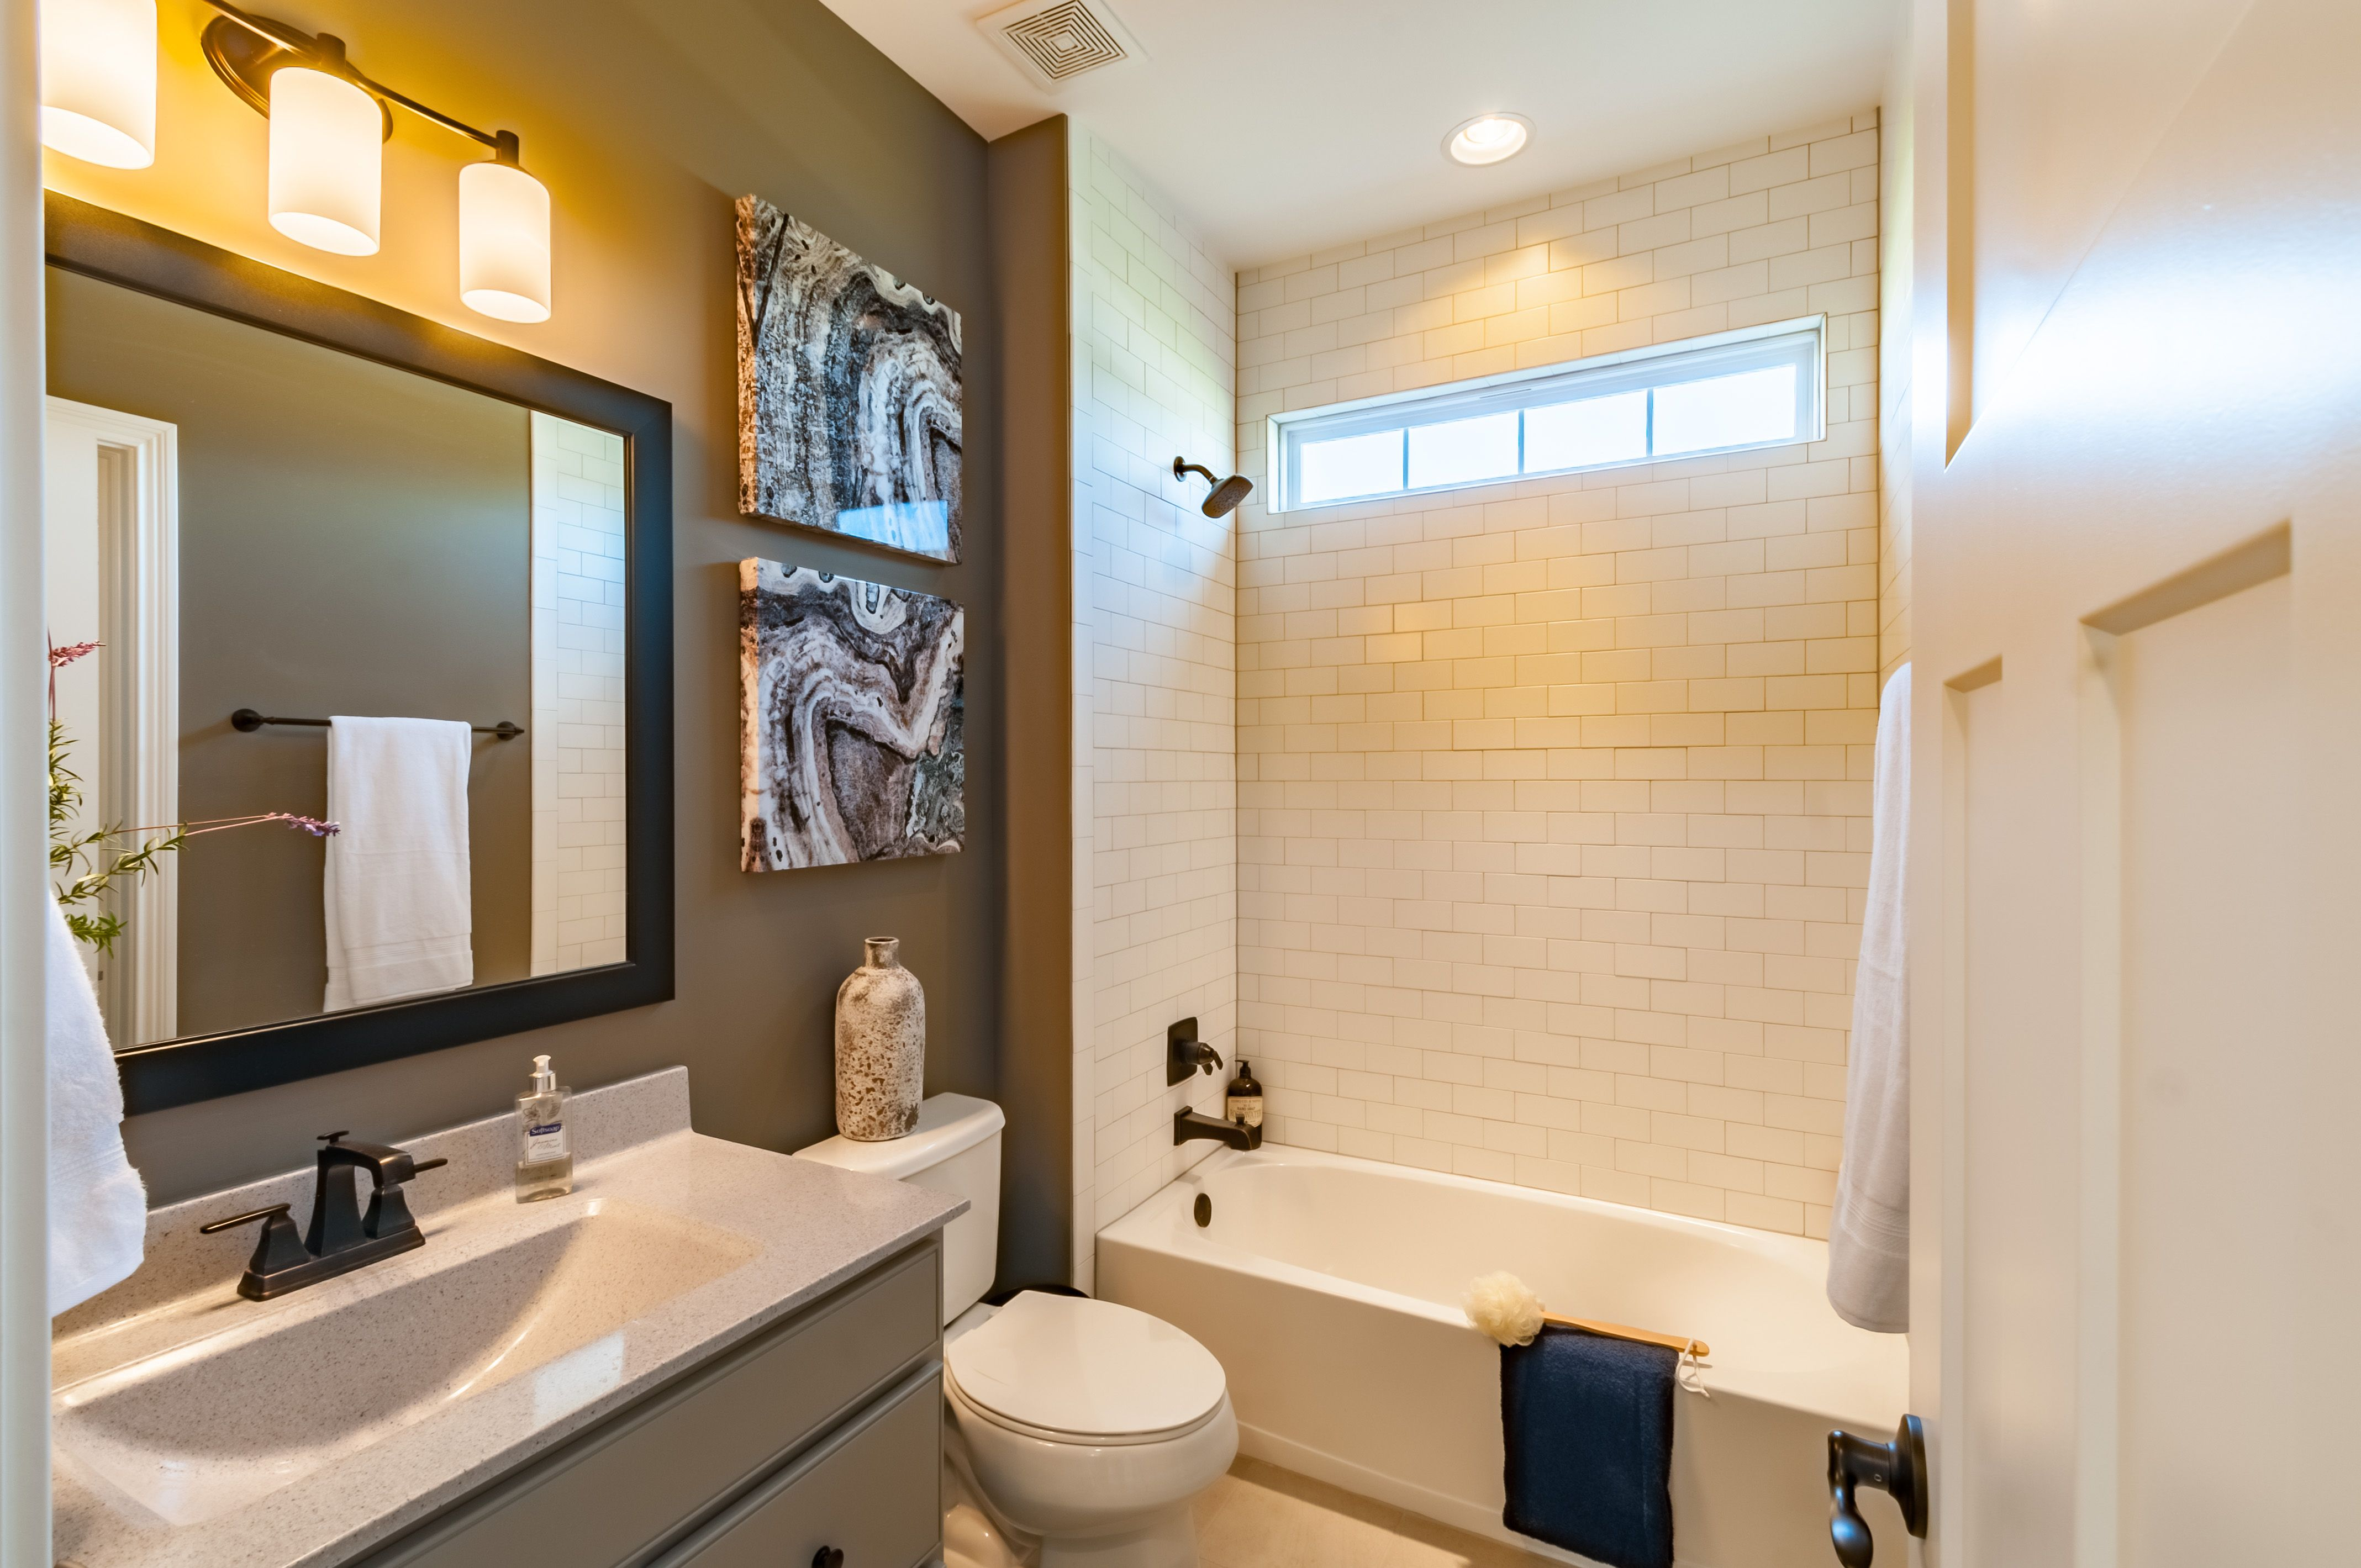 Bathroom featured in the Stanton By Fischer Homes  in Columbus, OH